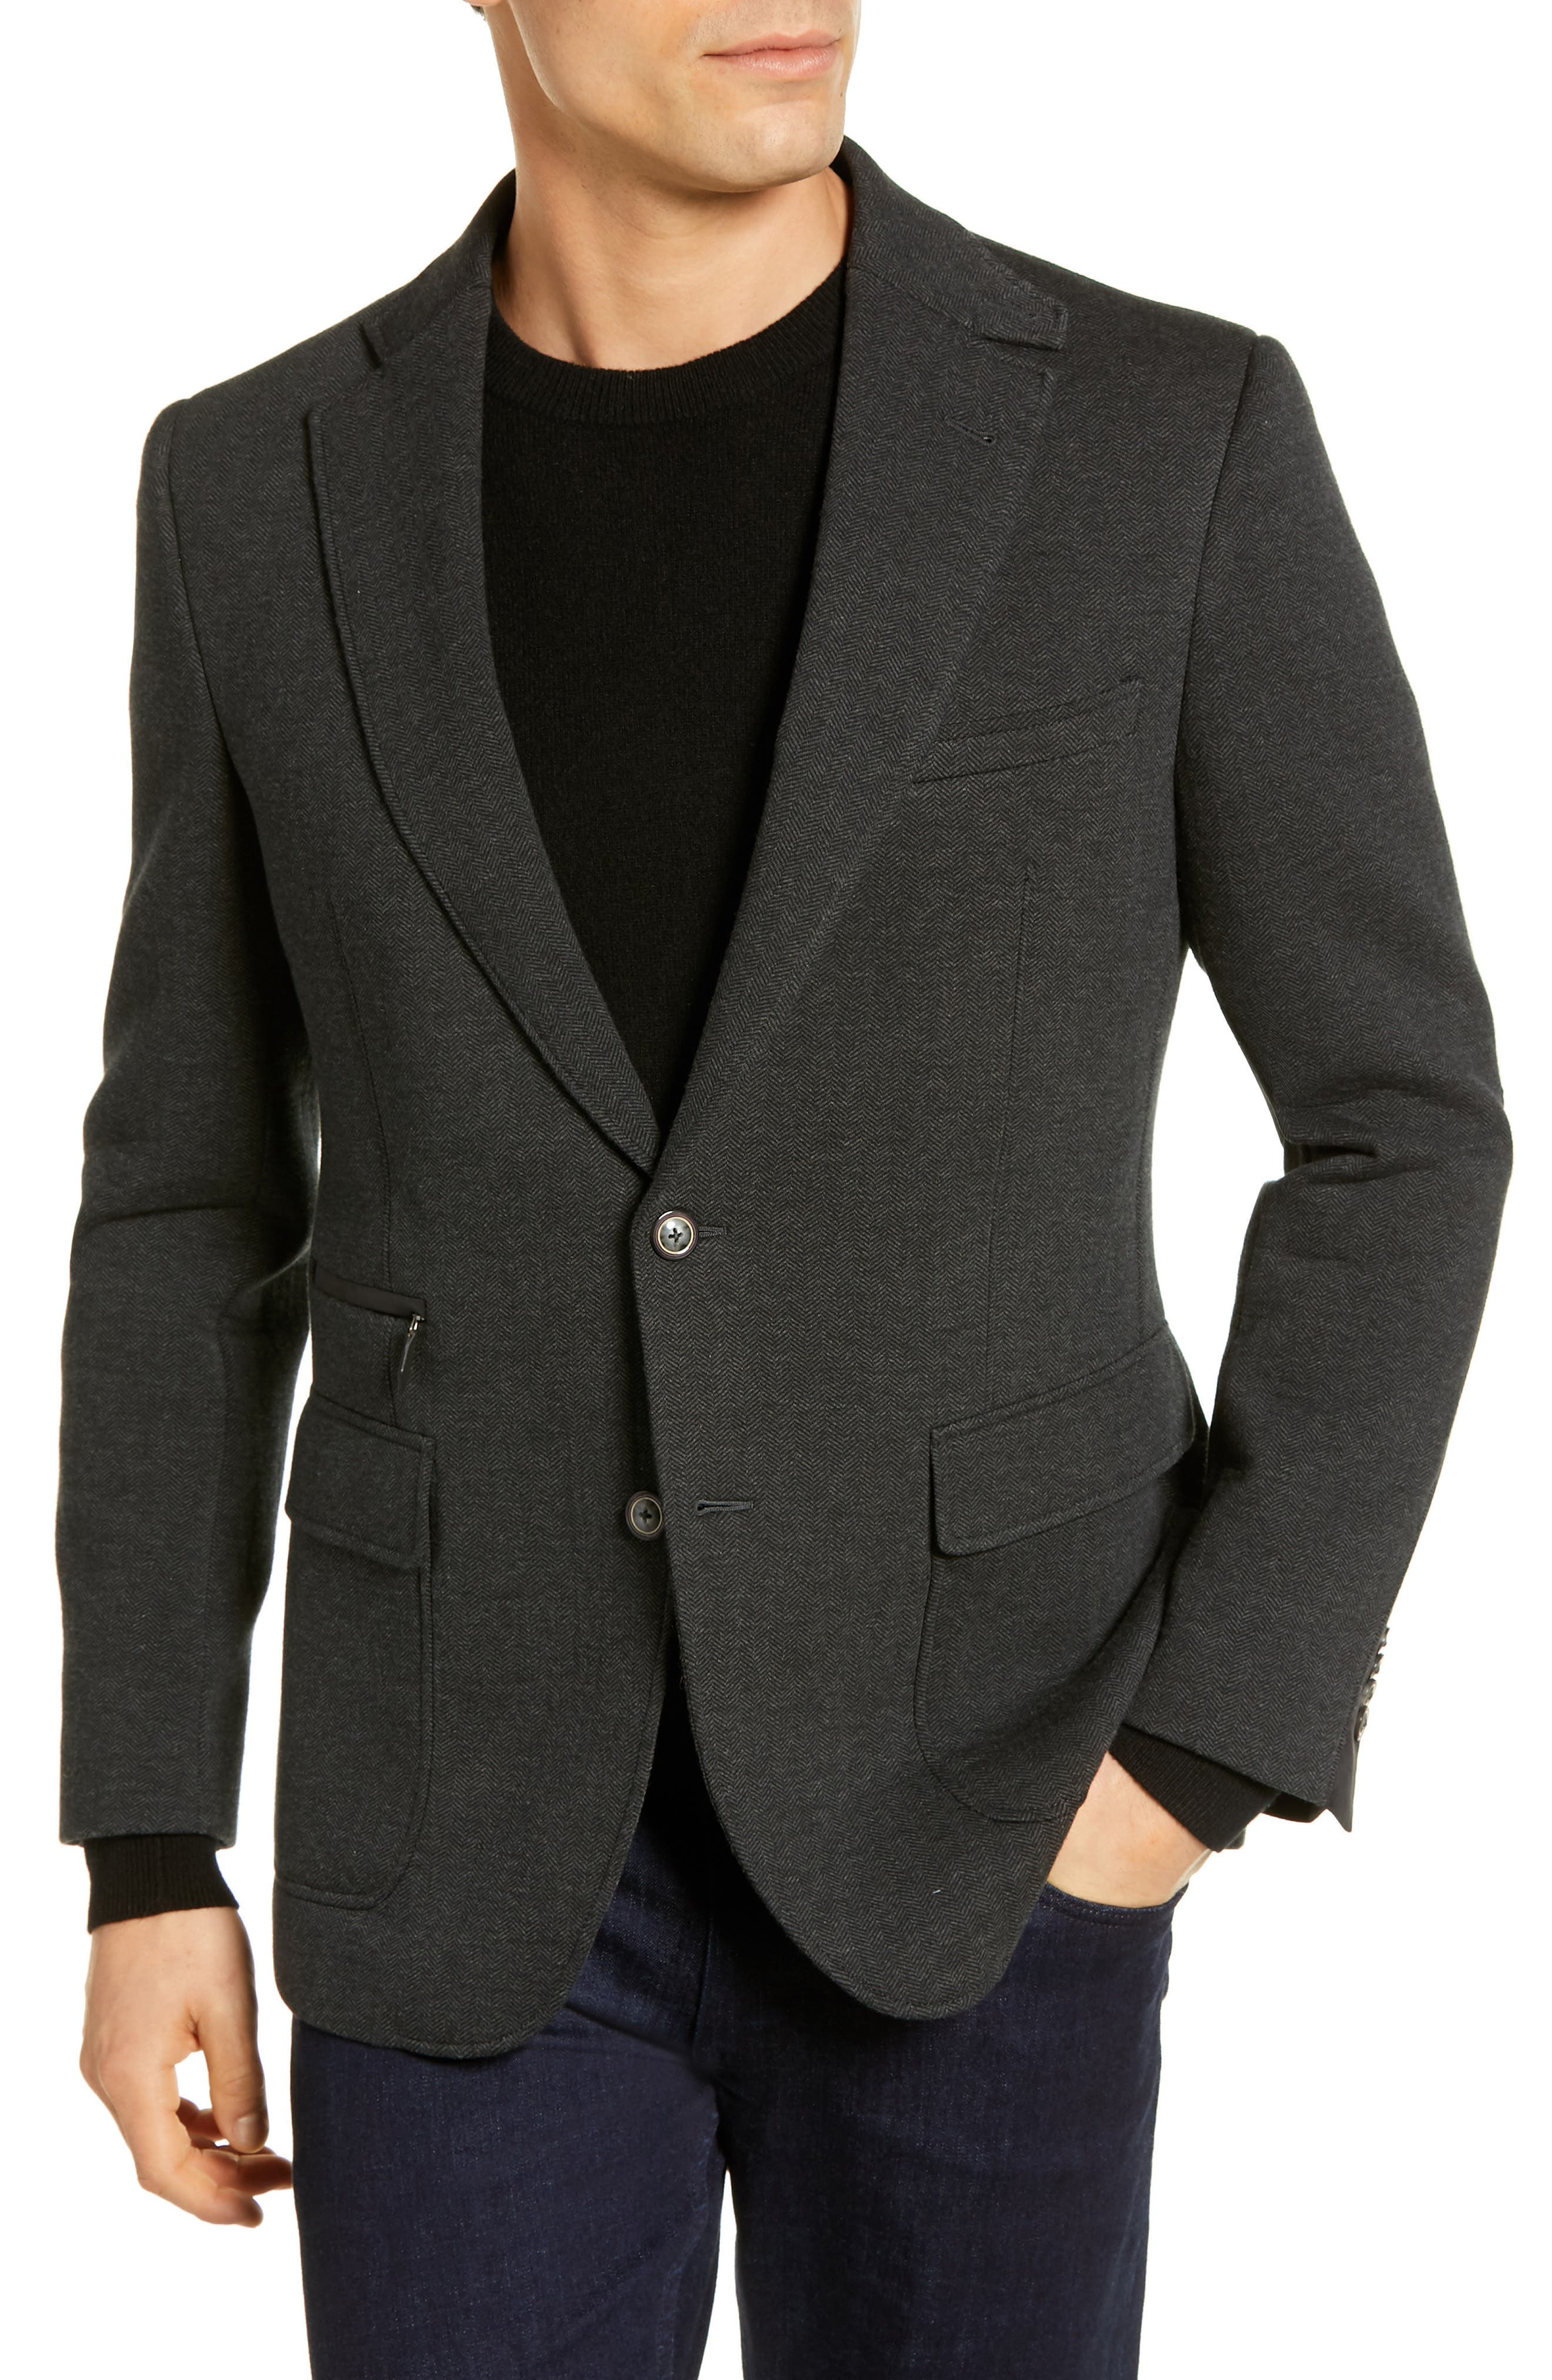 Downhill Tailored Fit Sport Coat,                             Alternate thumbnail 4, color,                             020